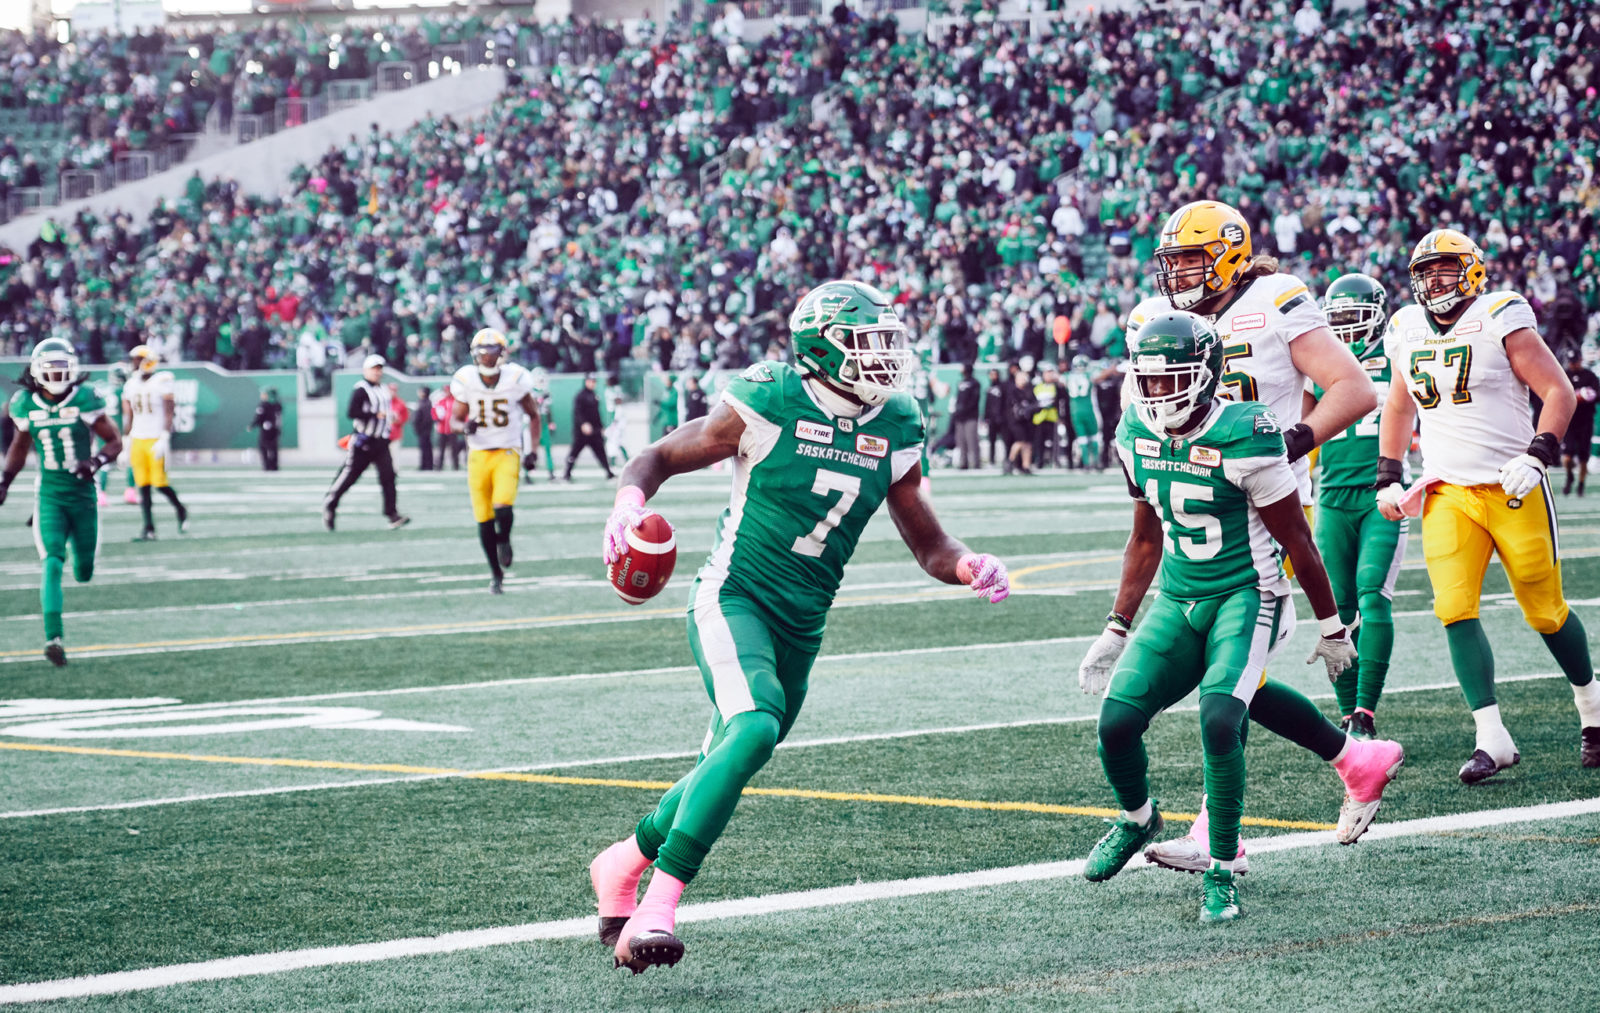 e2bc46355 Alouettes receiver Eugene Lewis looks in a pass against the Calgary  Stampeders at Percival-Molson Stadium. The Stamps go on to win 12-6 in the  ...